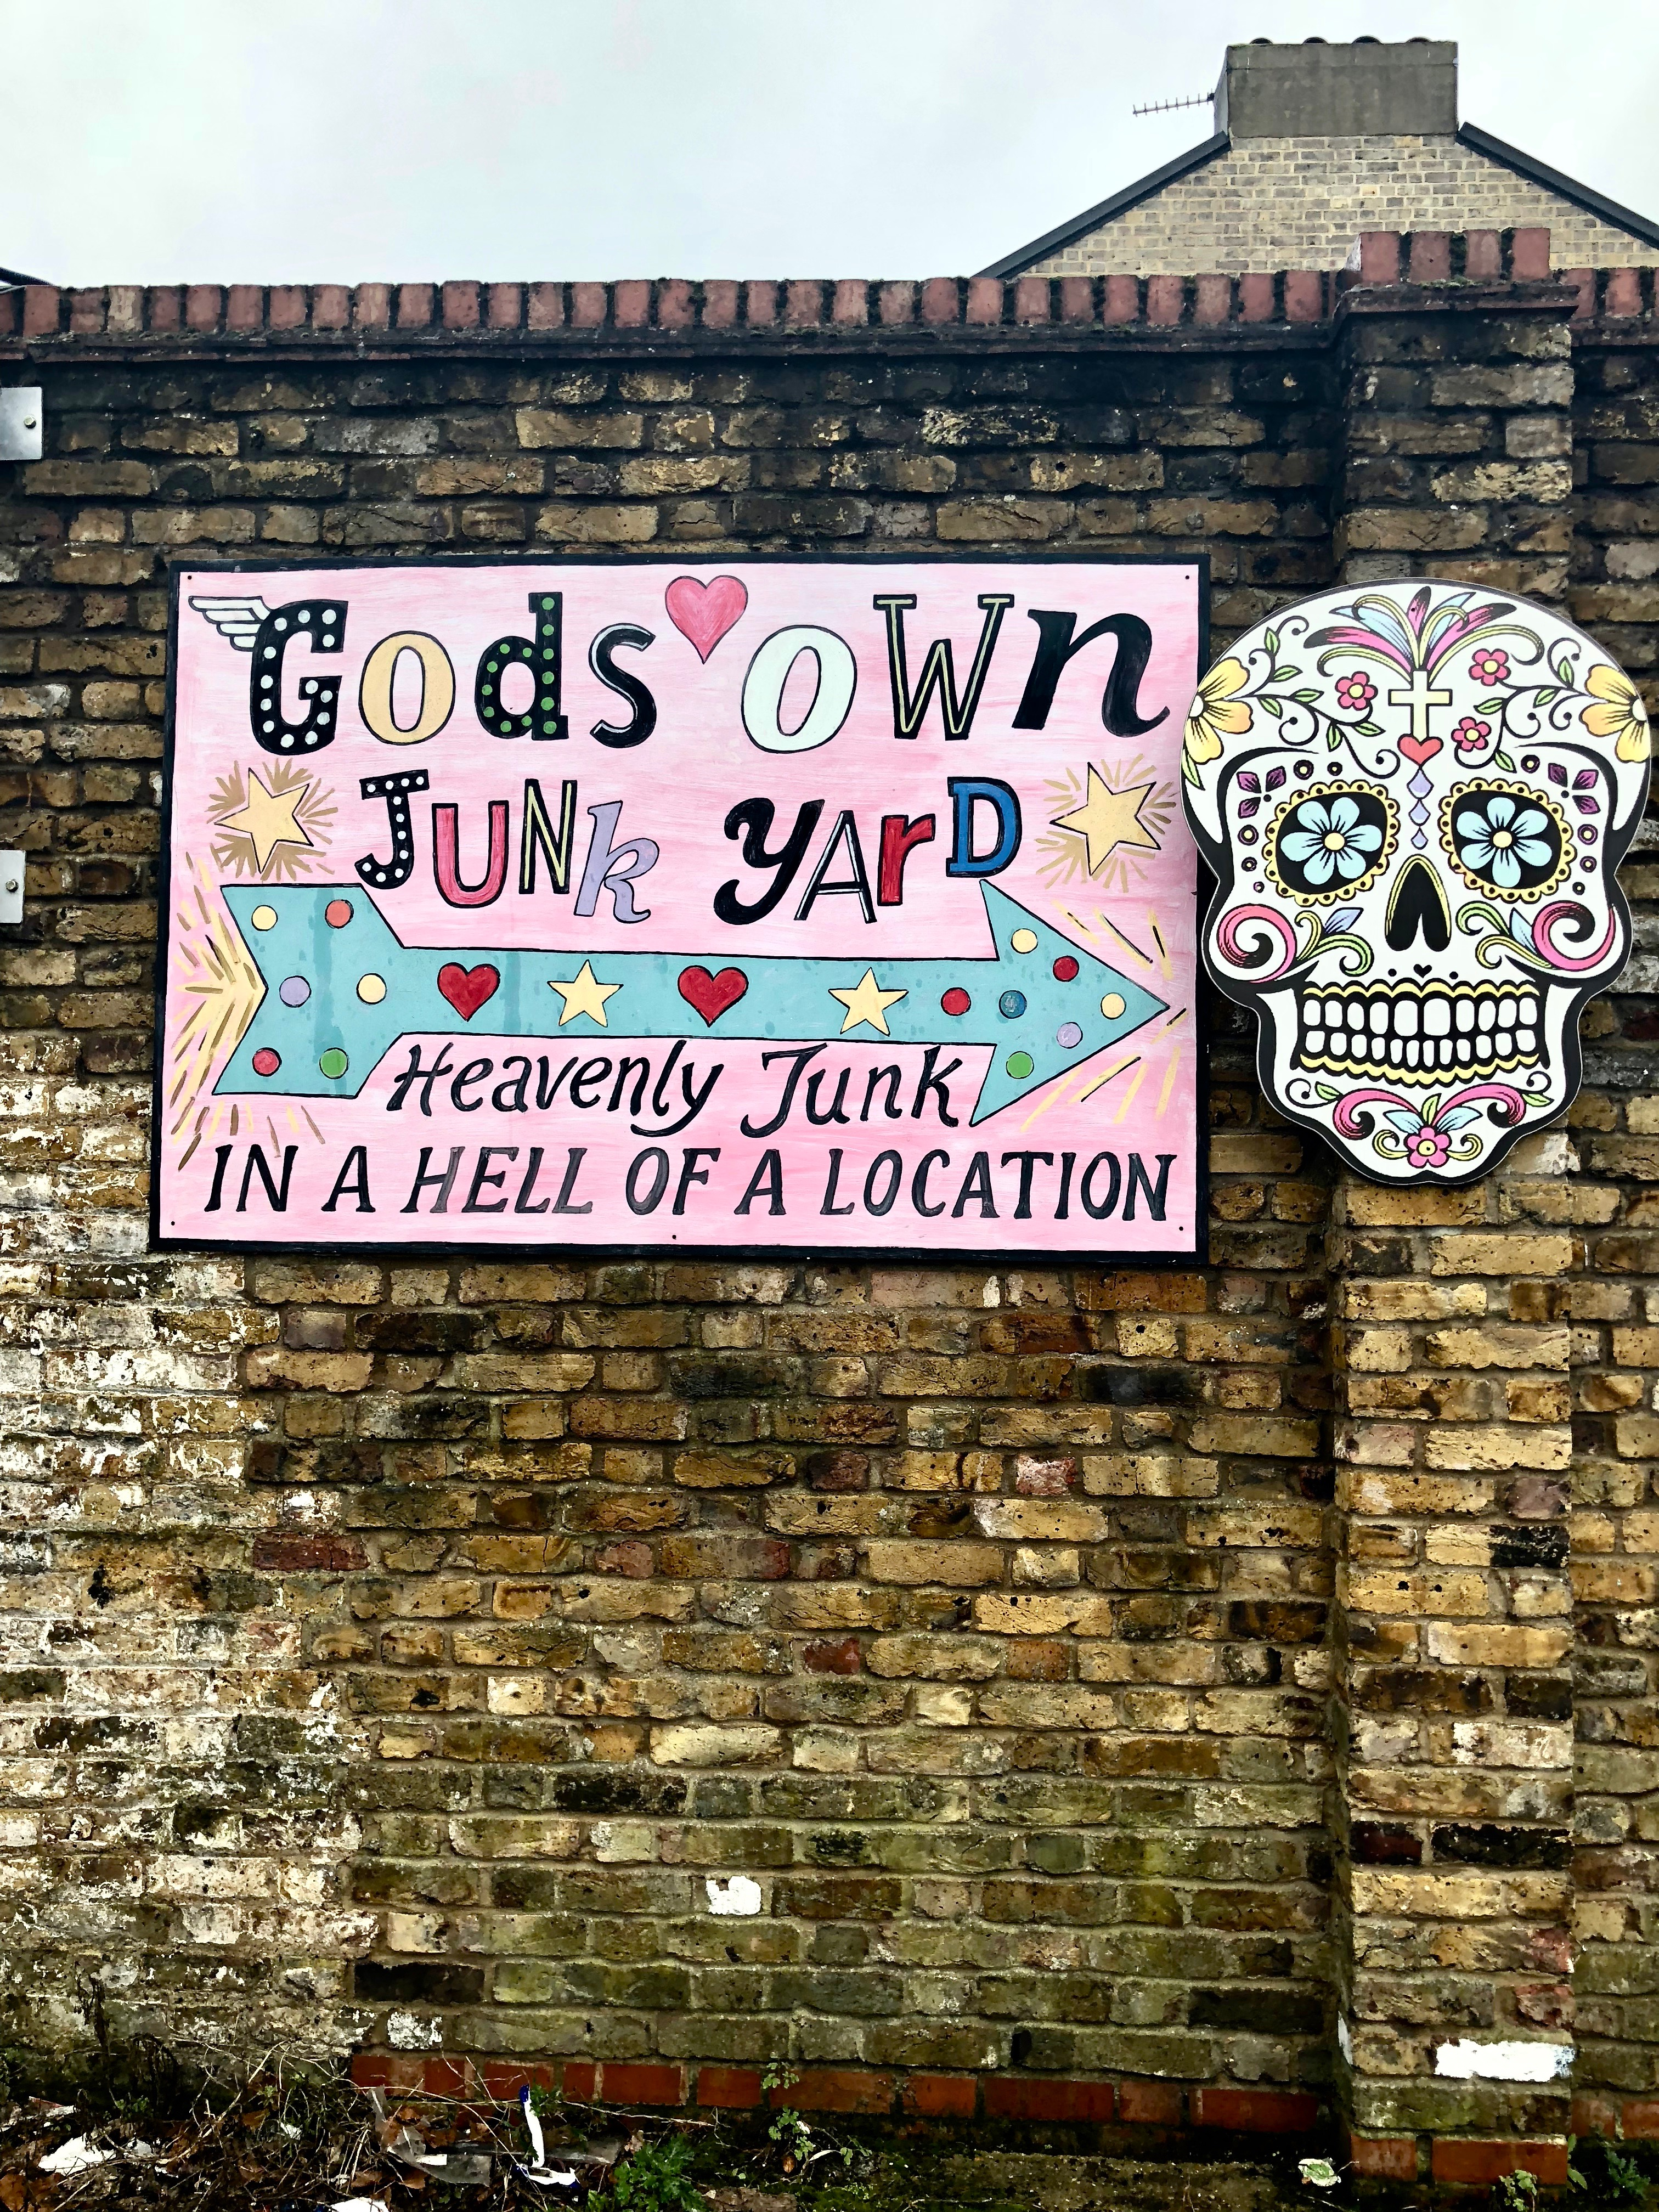 CAPAStudyAbroad_London_Spring2018_From Kelly Allen - Outside God's Own Junkyard